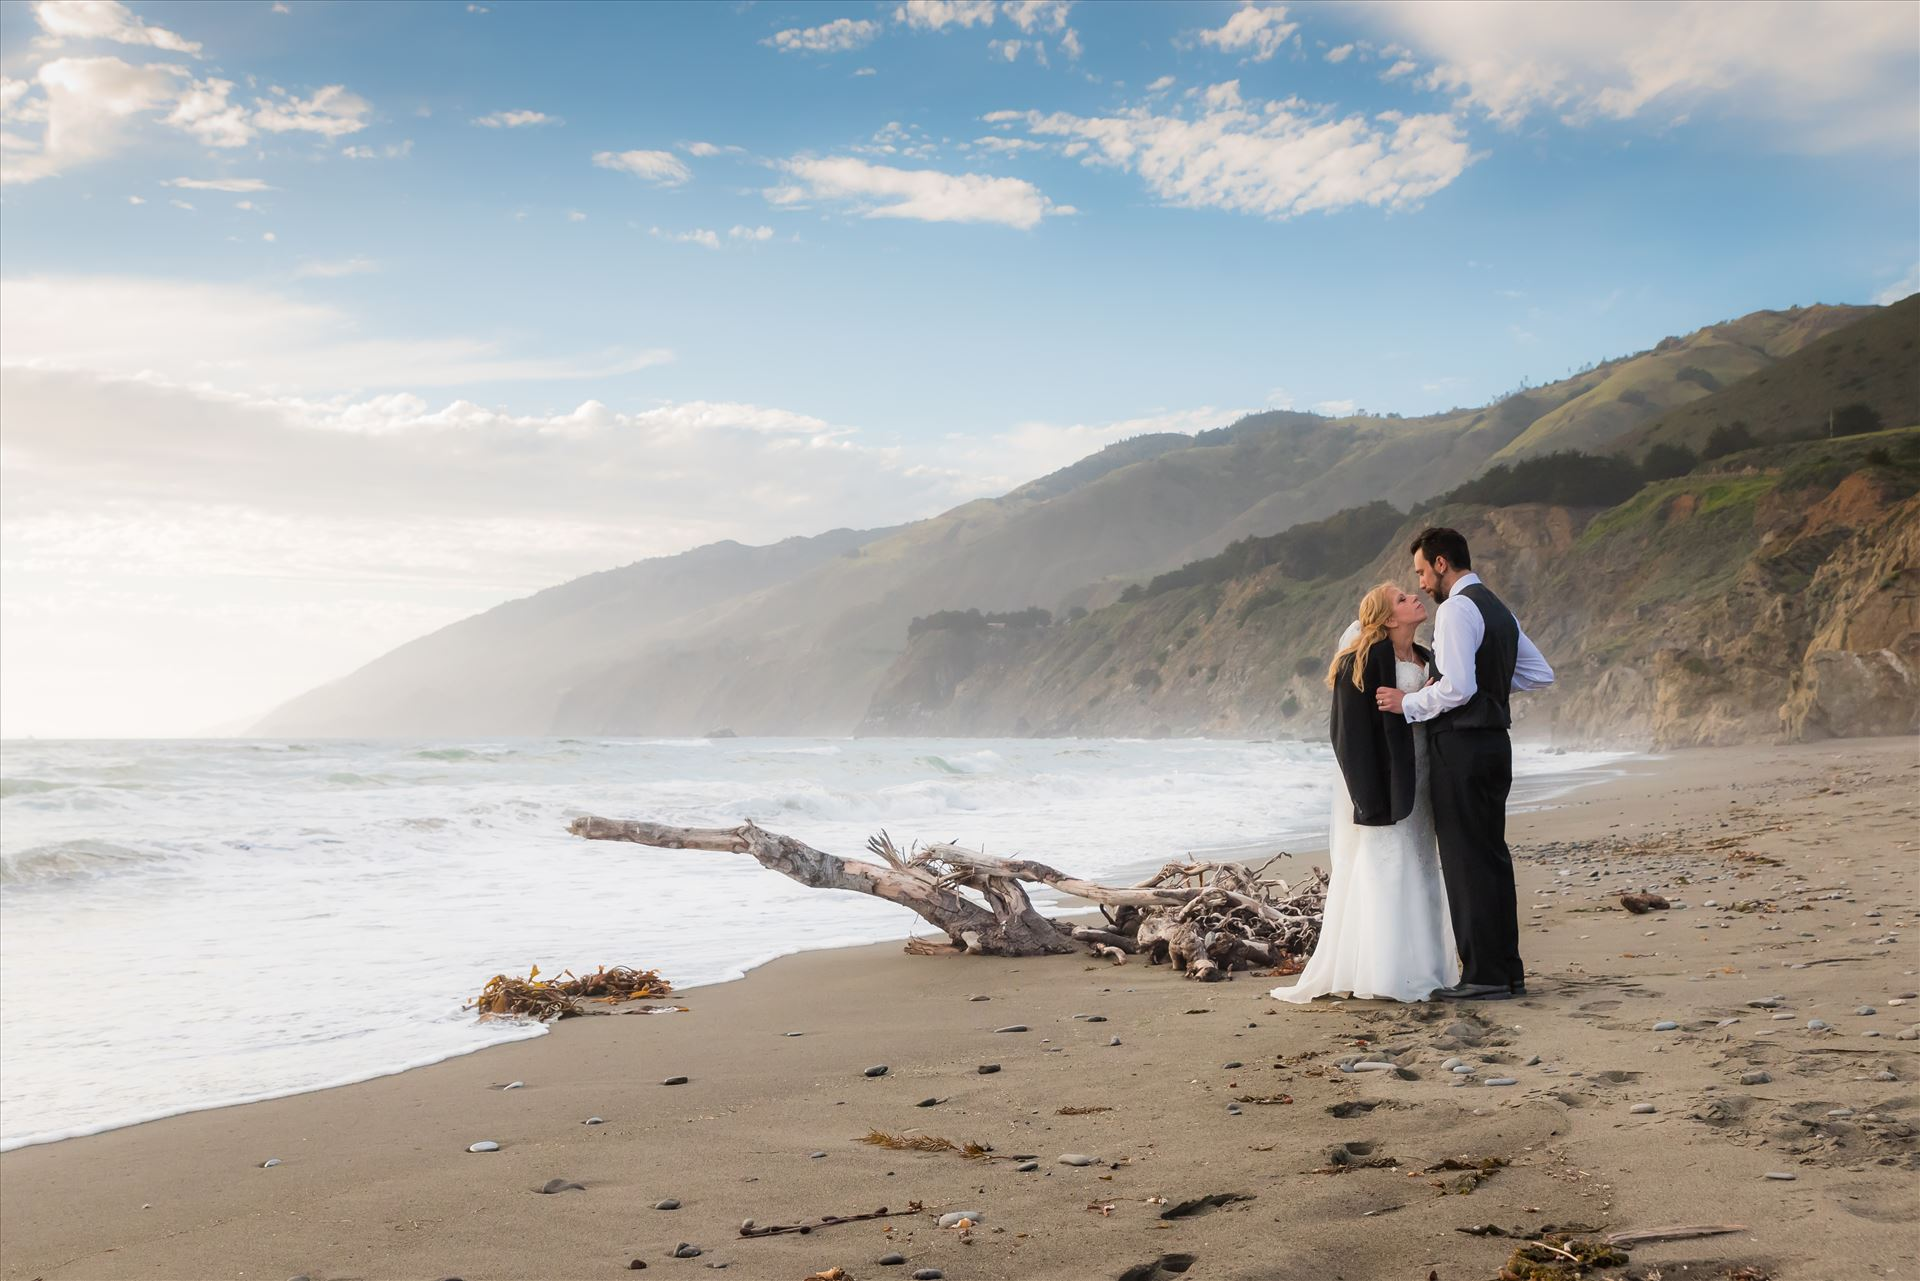 Adele and Jason 27 - Ragged Point Inn Wedding Elopement photography by Mirror's Edge Photography in San Simeon Cambria California. Bride and Groom at Ragged Point Beach at sunset by Sarah Williams